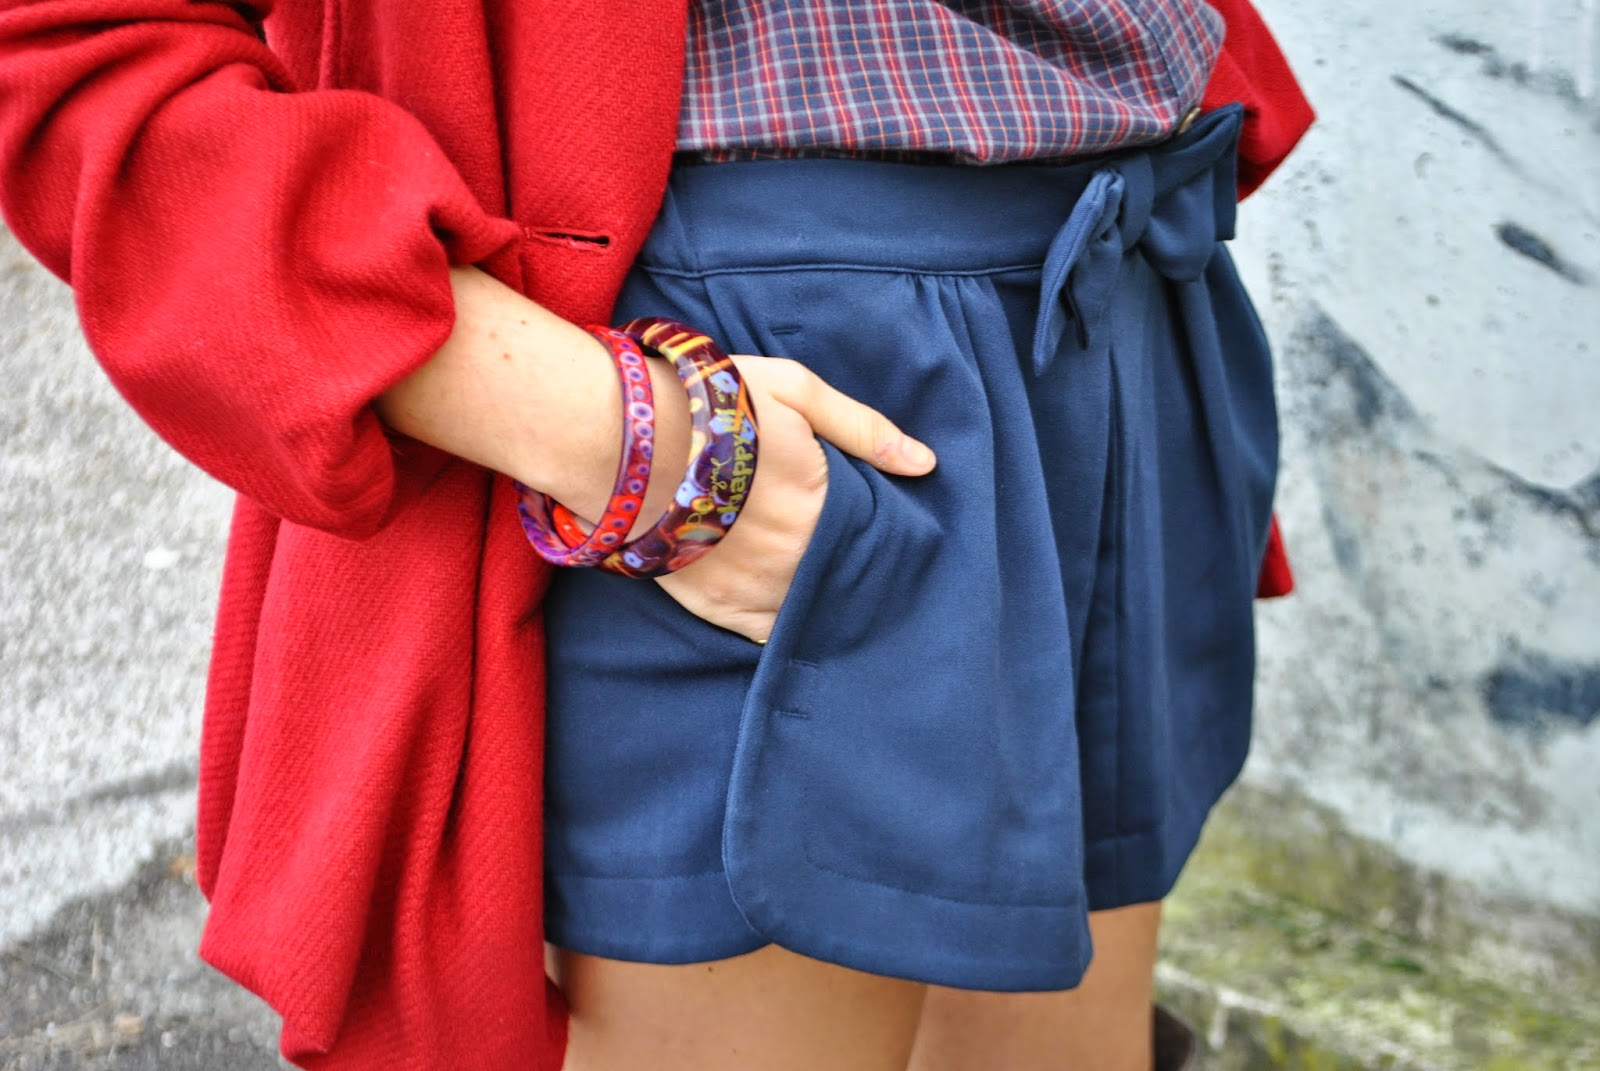 Outfit shorts e camicia shorts blu con fiocco outfit camicia a quadri outfit cappotto rosso Sisley outfitcuissardes outfit stivali al ginocchio pimkie borsa pepe jeans abbinamenti cappotto rosso abbinamenti camicia a quadri come abbinare il cappotto rosso come abbinare la camicia a quadri collana majique majique London jewels outfit autunnali outfit novembre 2014 outfit mariafelicia magno outfit mariafelicia magno fashion blogger di colorblock by felym acconciatura treccia laterale majique London necklace pimkie boots fashion blog italiani fashion blogger italiane fashion blogger bionde fashion bloggers Italy Italian fashion blogggers Italian girls